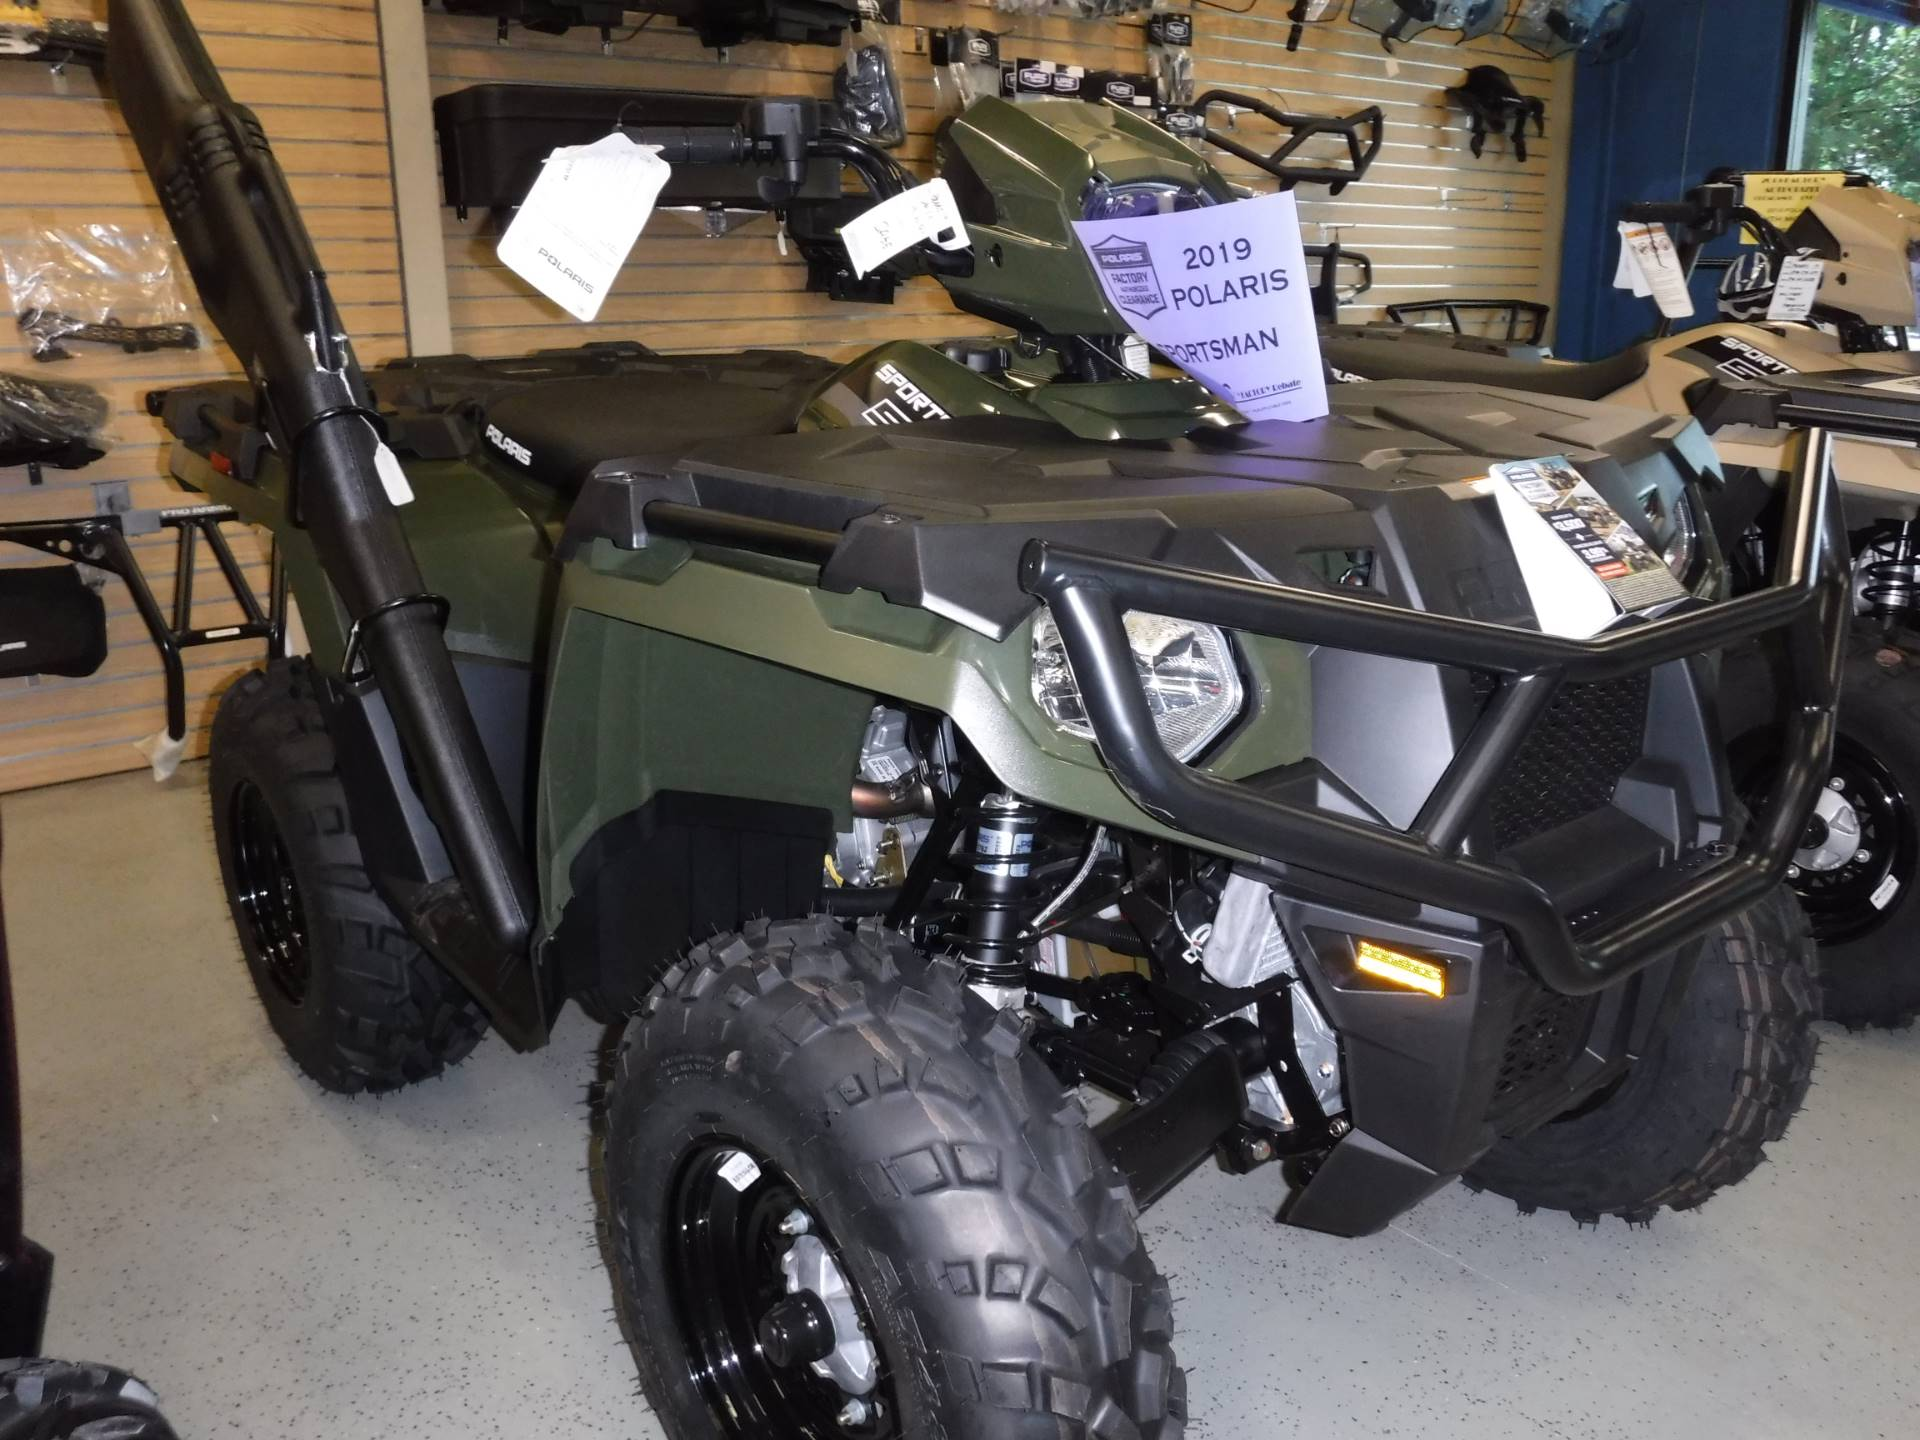 2019 Polaris Sportsman 570 in Hermitage, Pennsylvania - Photo 1